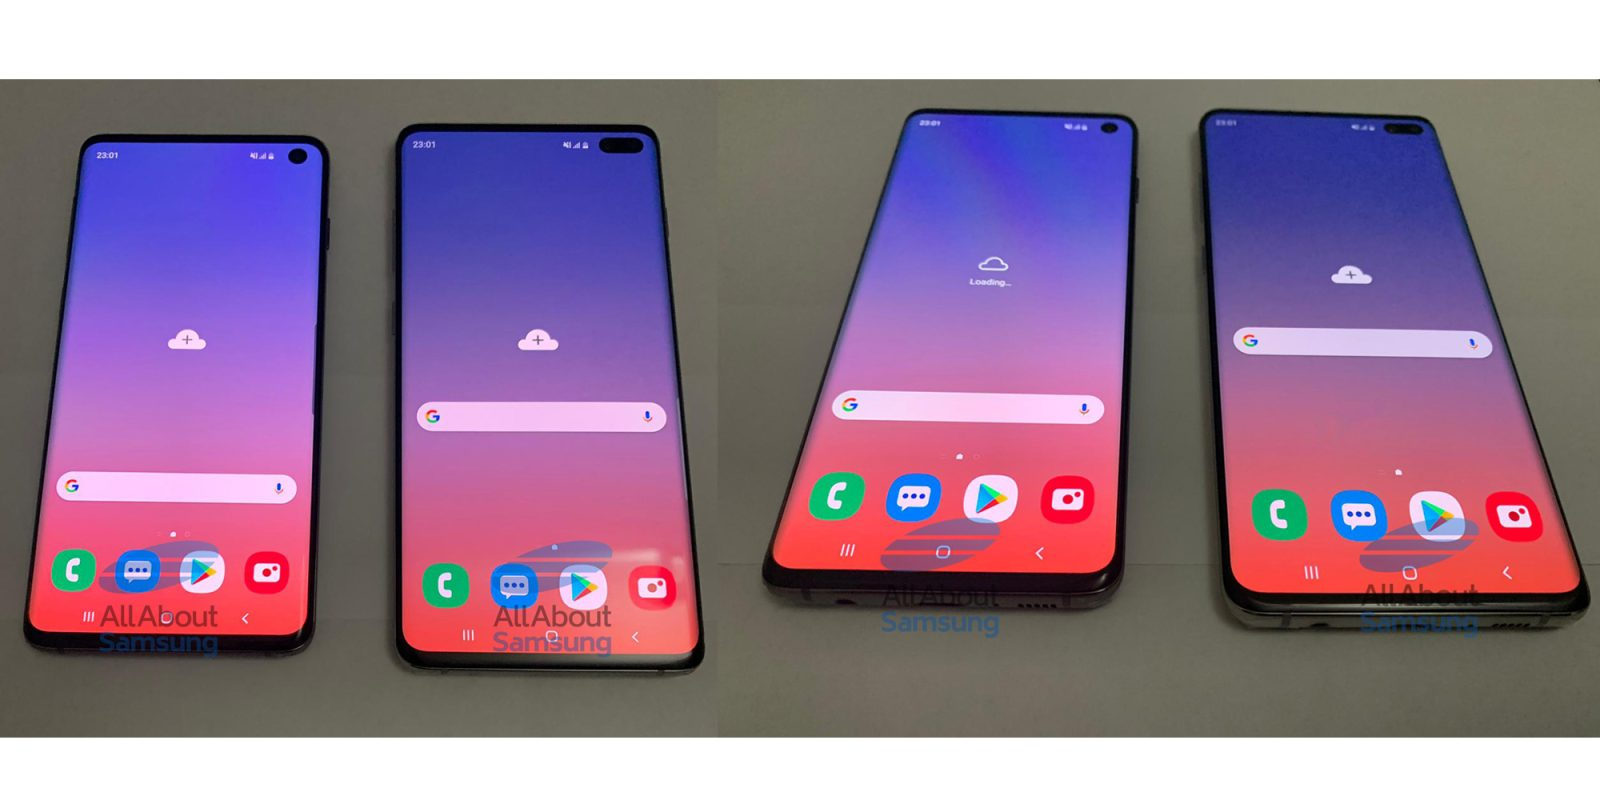 Samsung Galaxy S10 and S10 Plus prototypes leak in full